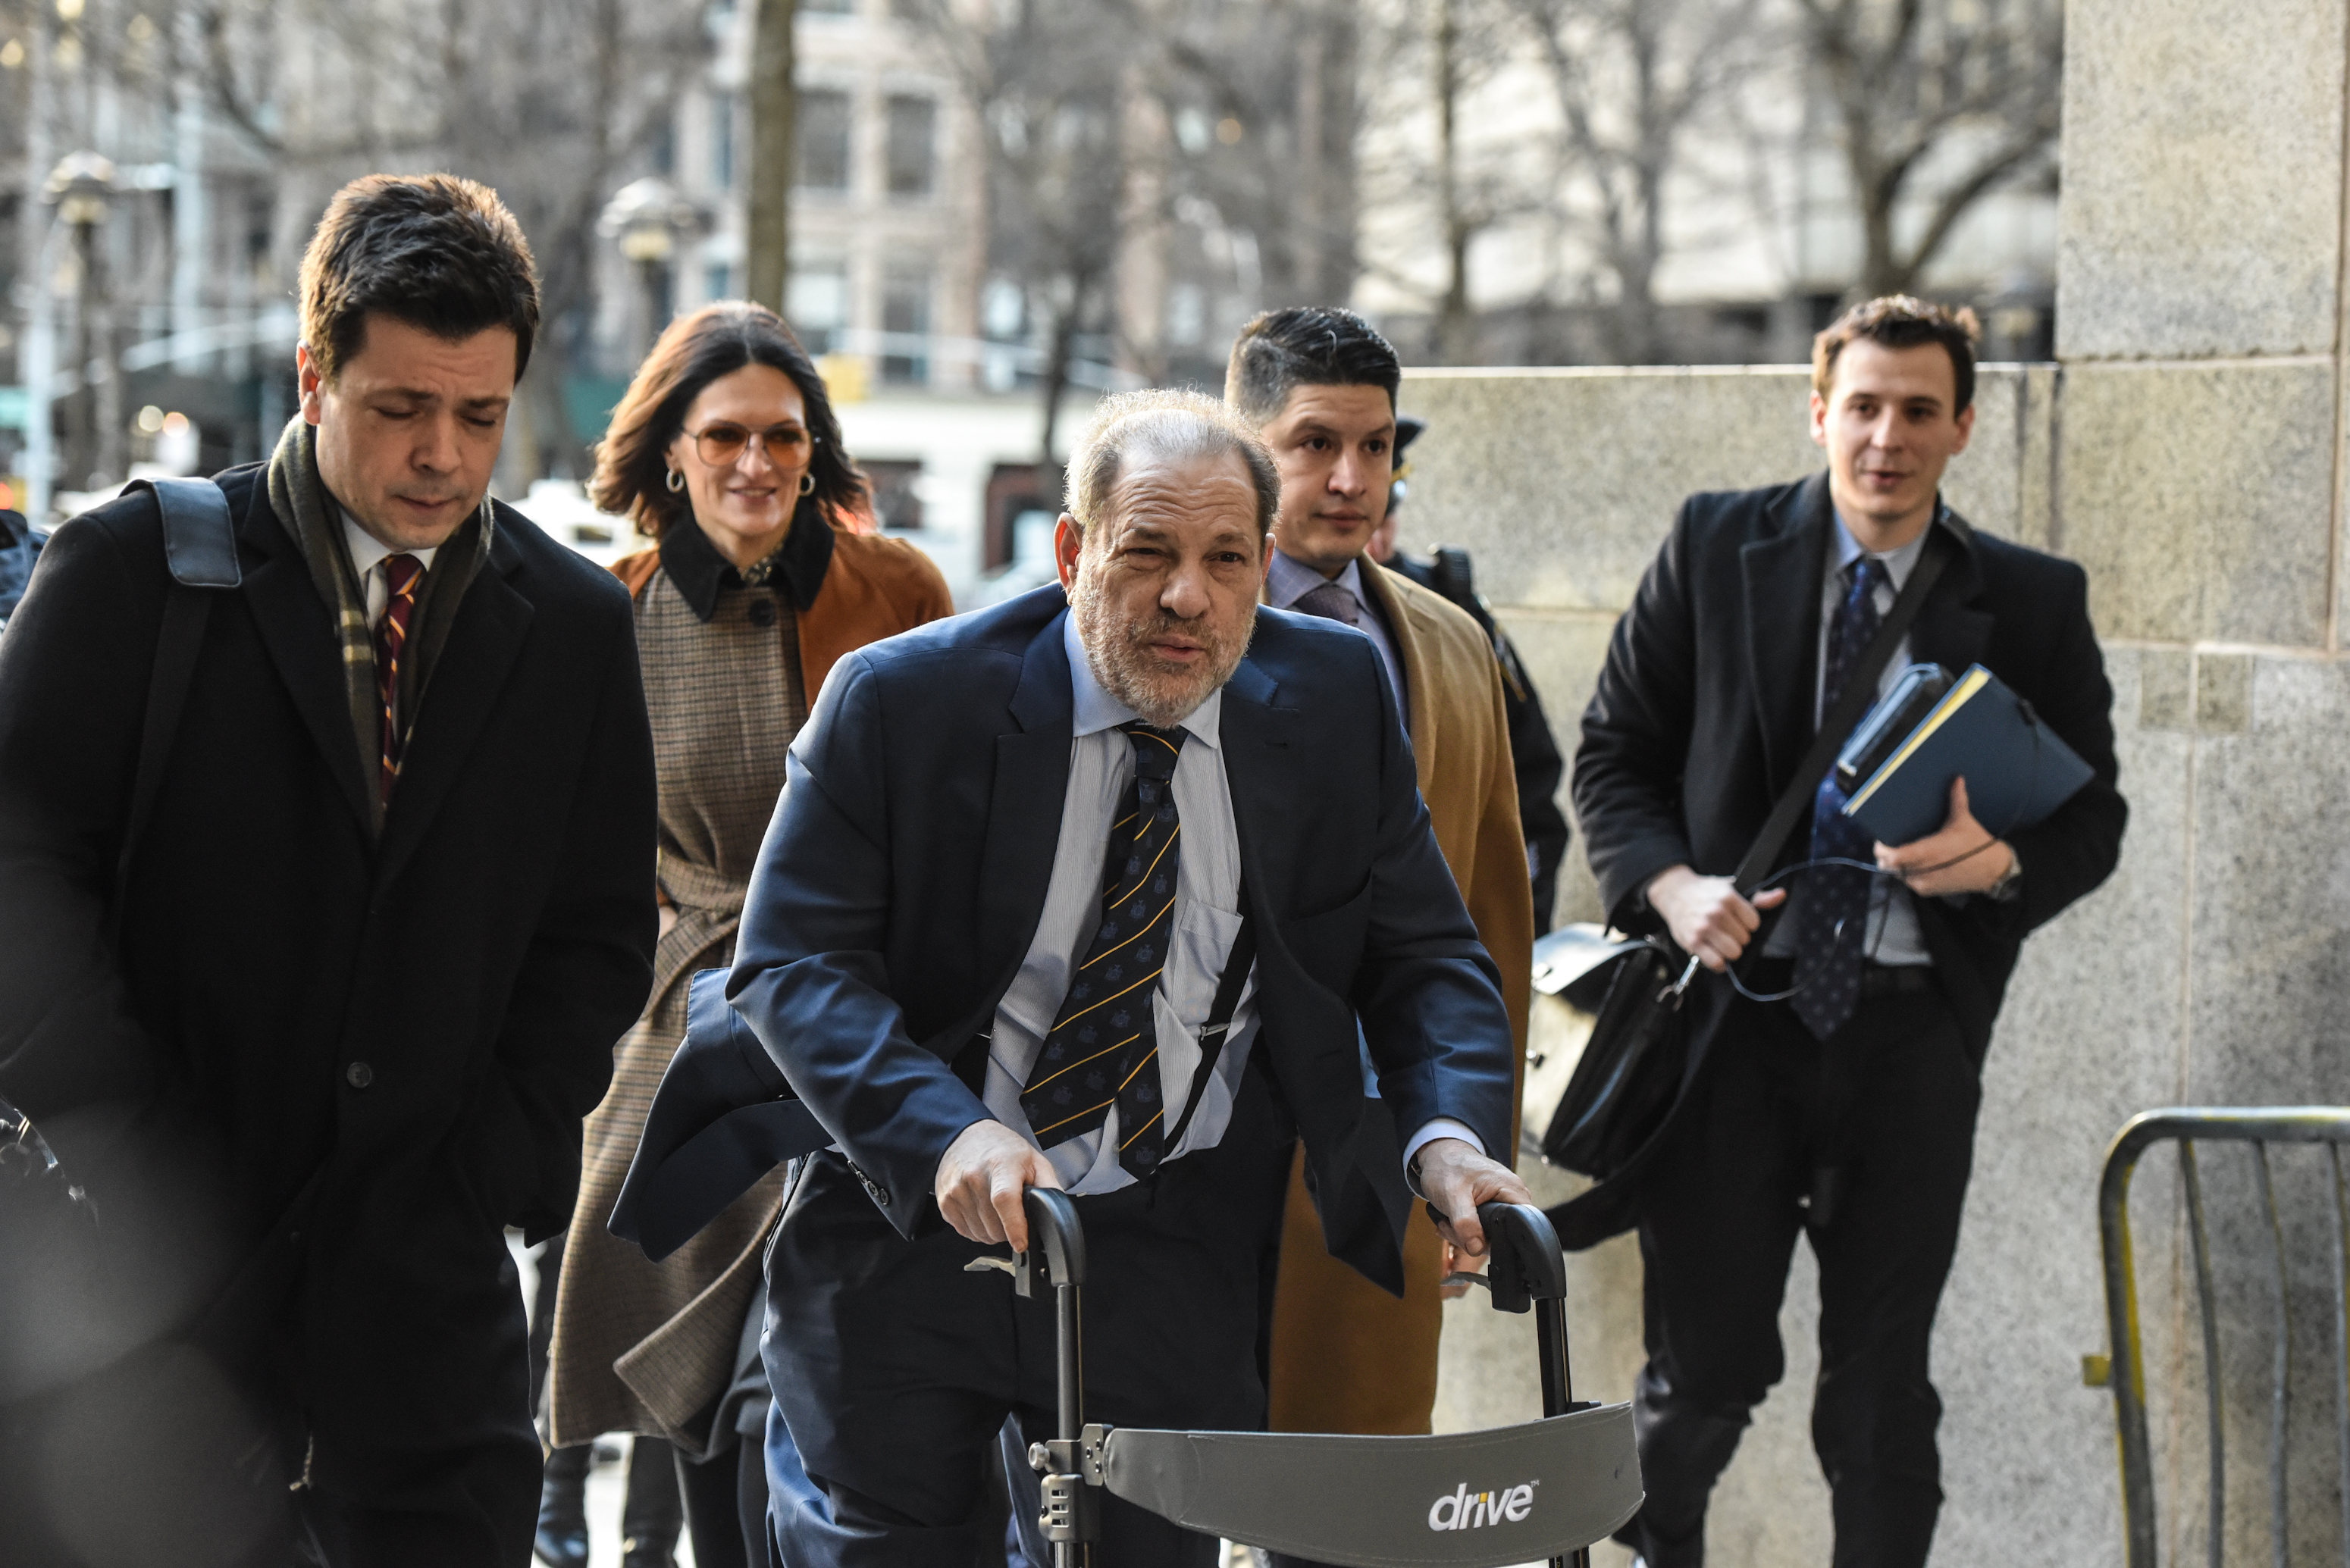 Movie producer Harvey Weinstein arrives for his sexual assault trial at New York Criminal Court on February 14, 2020 in New York City. The weeks-long trial against Weinstein nears the end with the prosecution making closing arguments in today's trial. (Photo by Stephanie Keith/Getty Images)